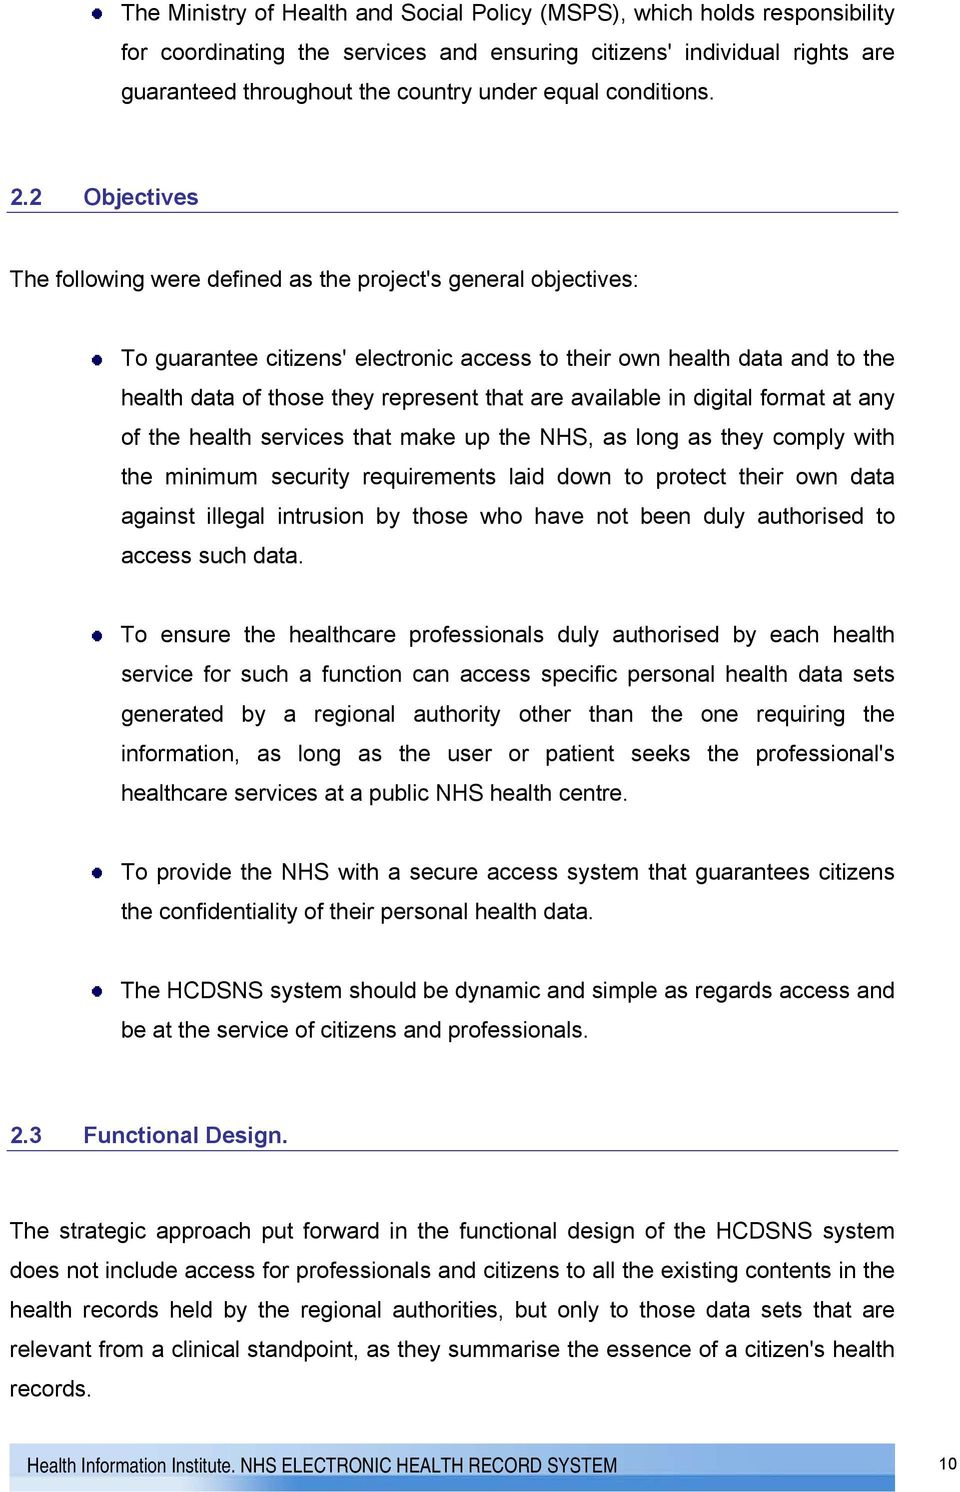 2 Objectives The following were defined as the project's general objectives: To guarantee citizens' electronic access to their own health data and to the health data of those they represent that are